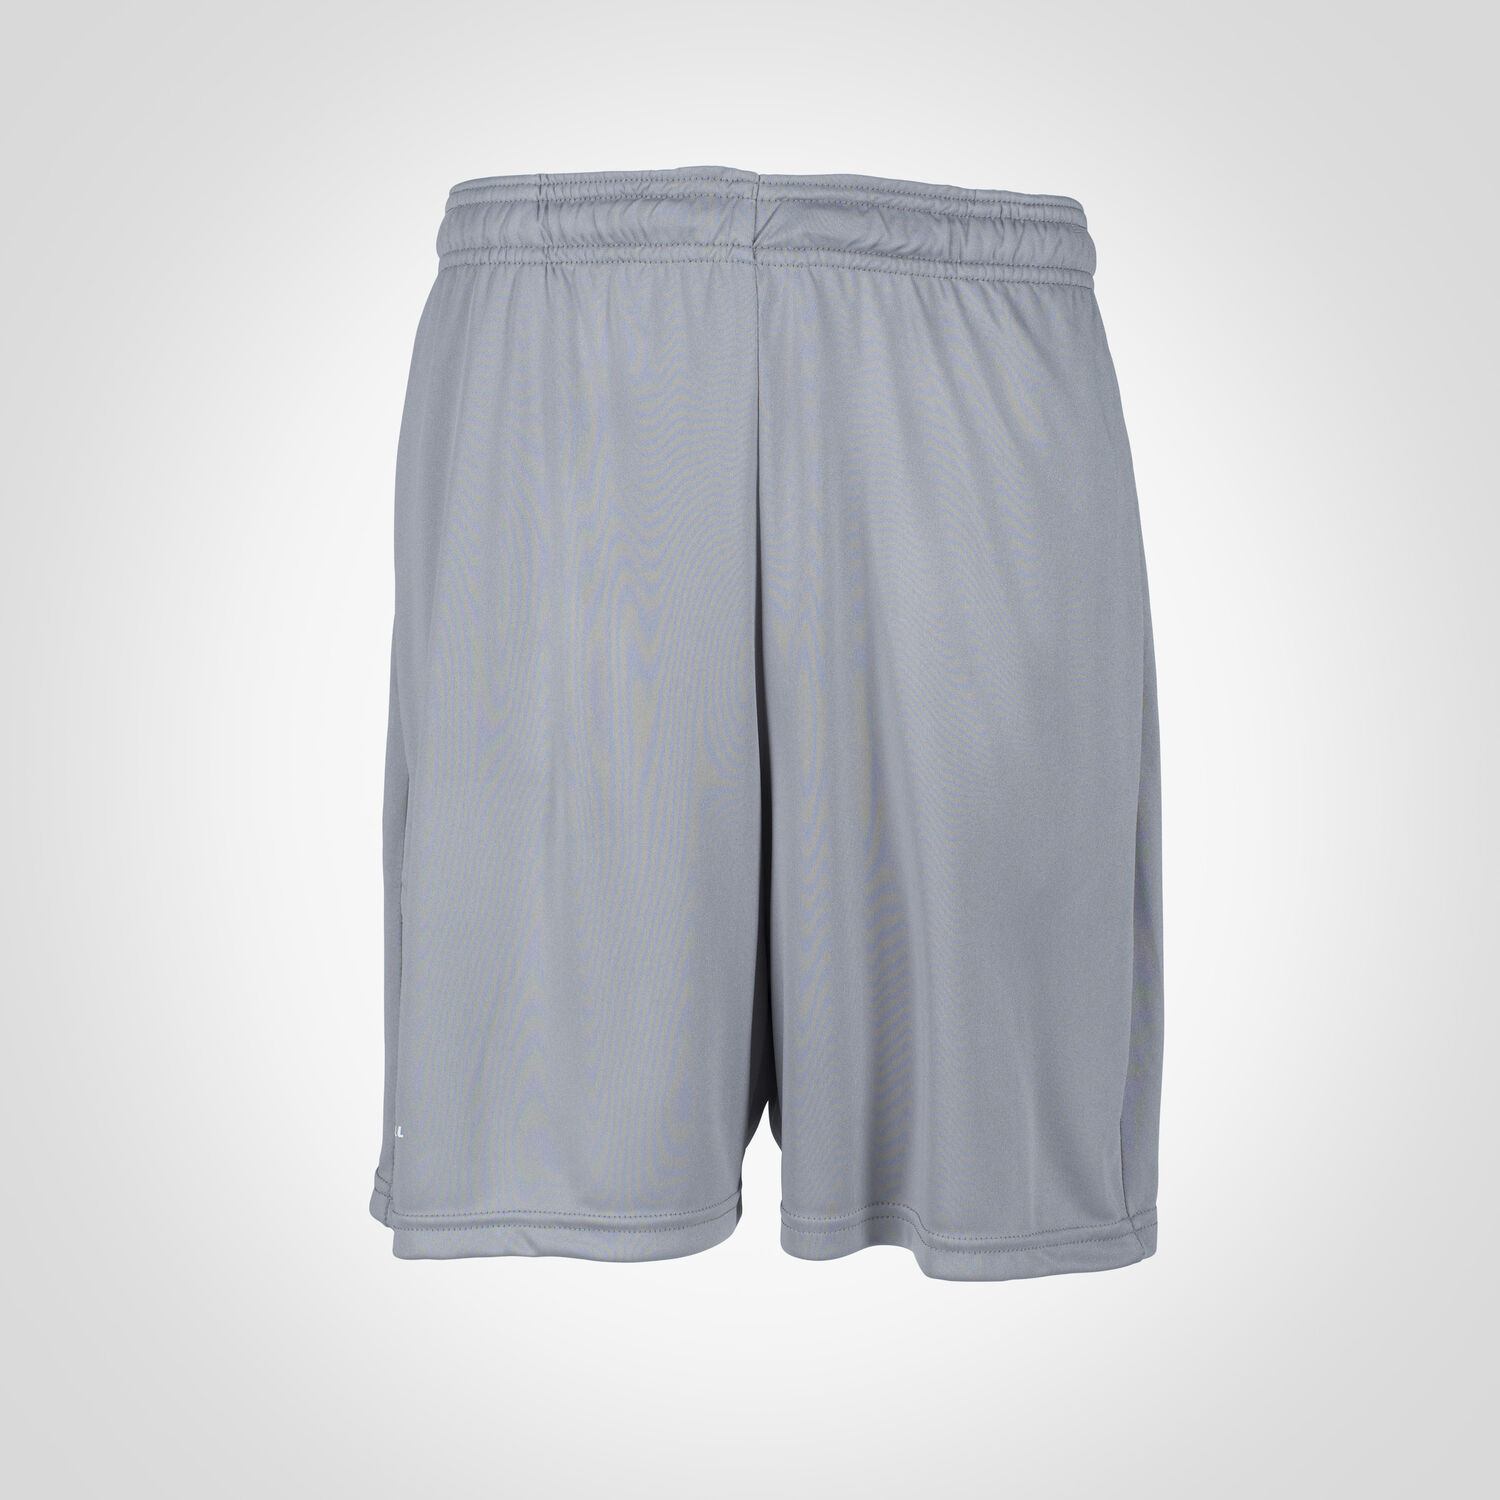 Youth Dri-Power® Performance Shorts with Pockets - Russell